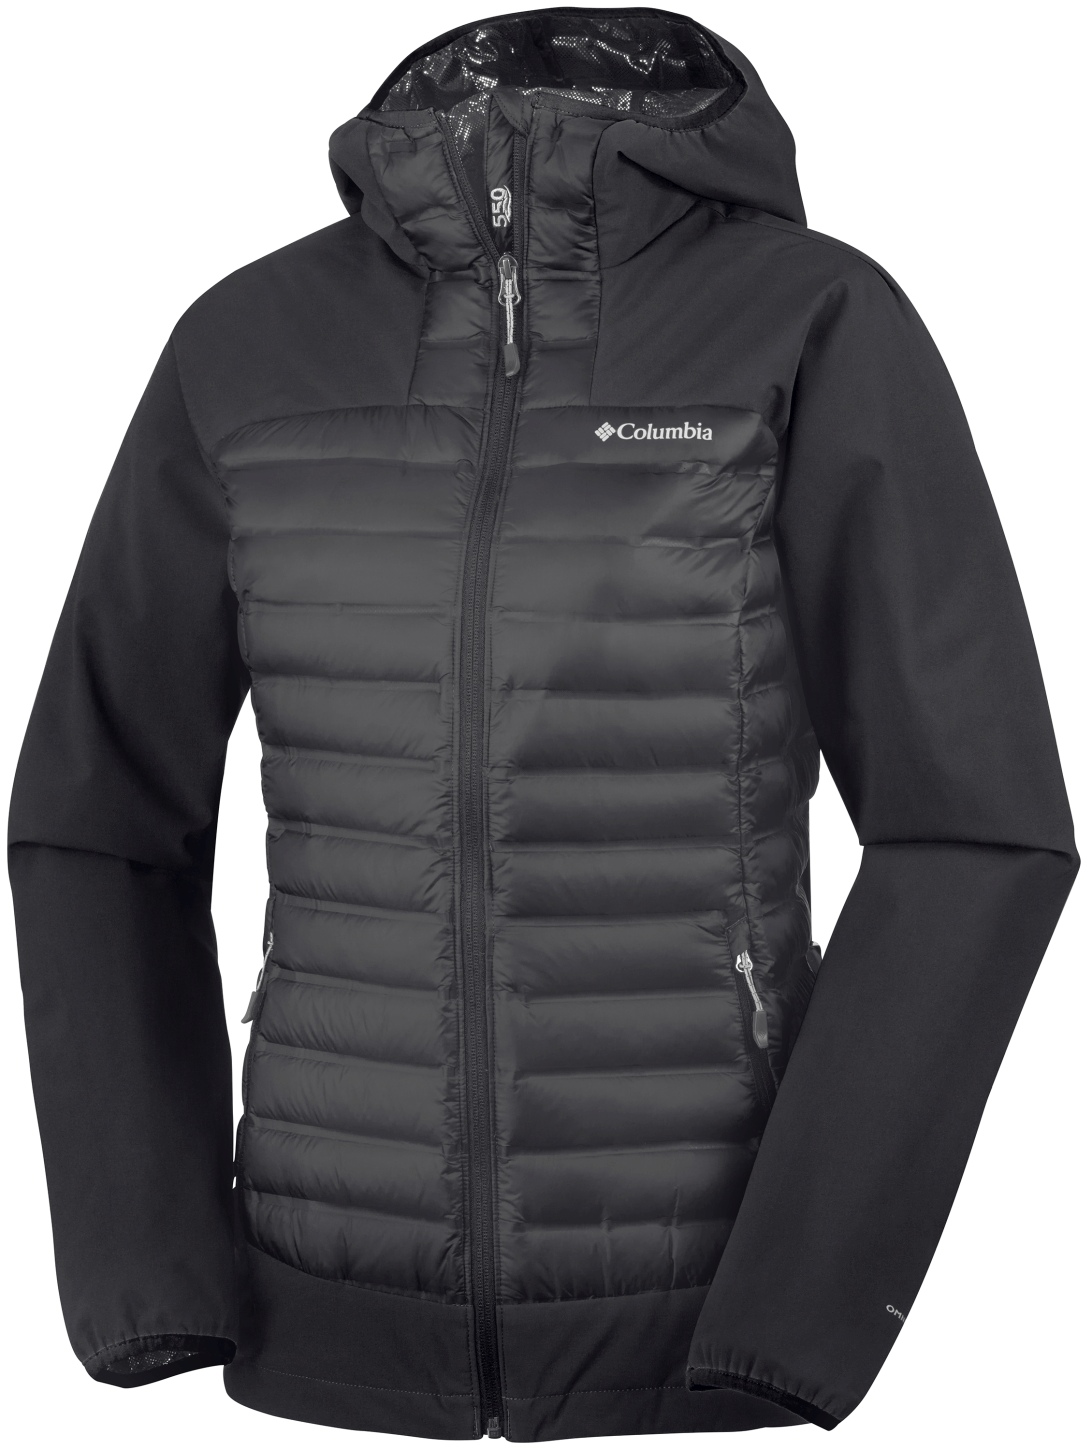 Columbia Women's Dutch Hollow Hybrid Jacket Black-30